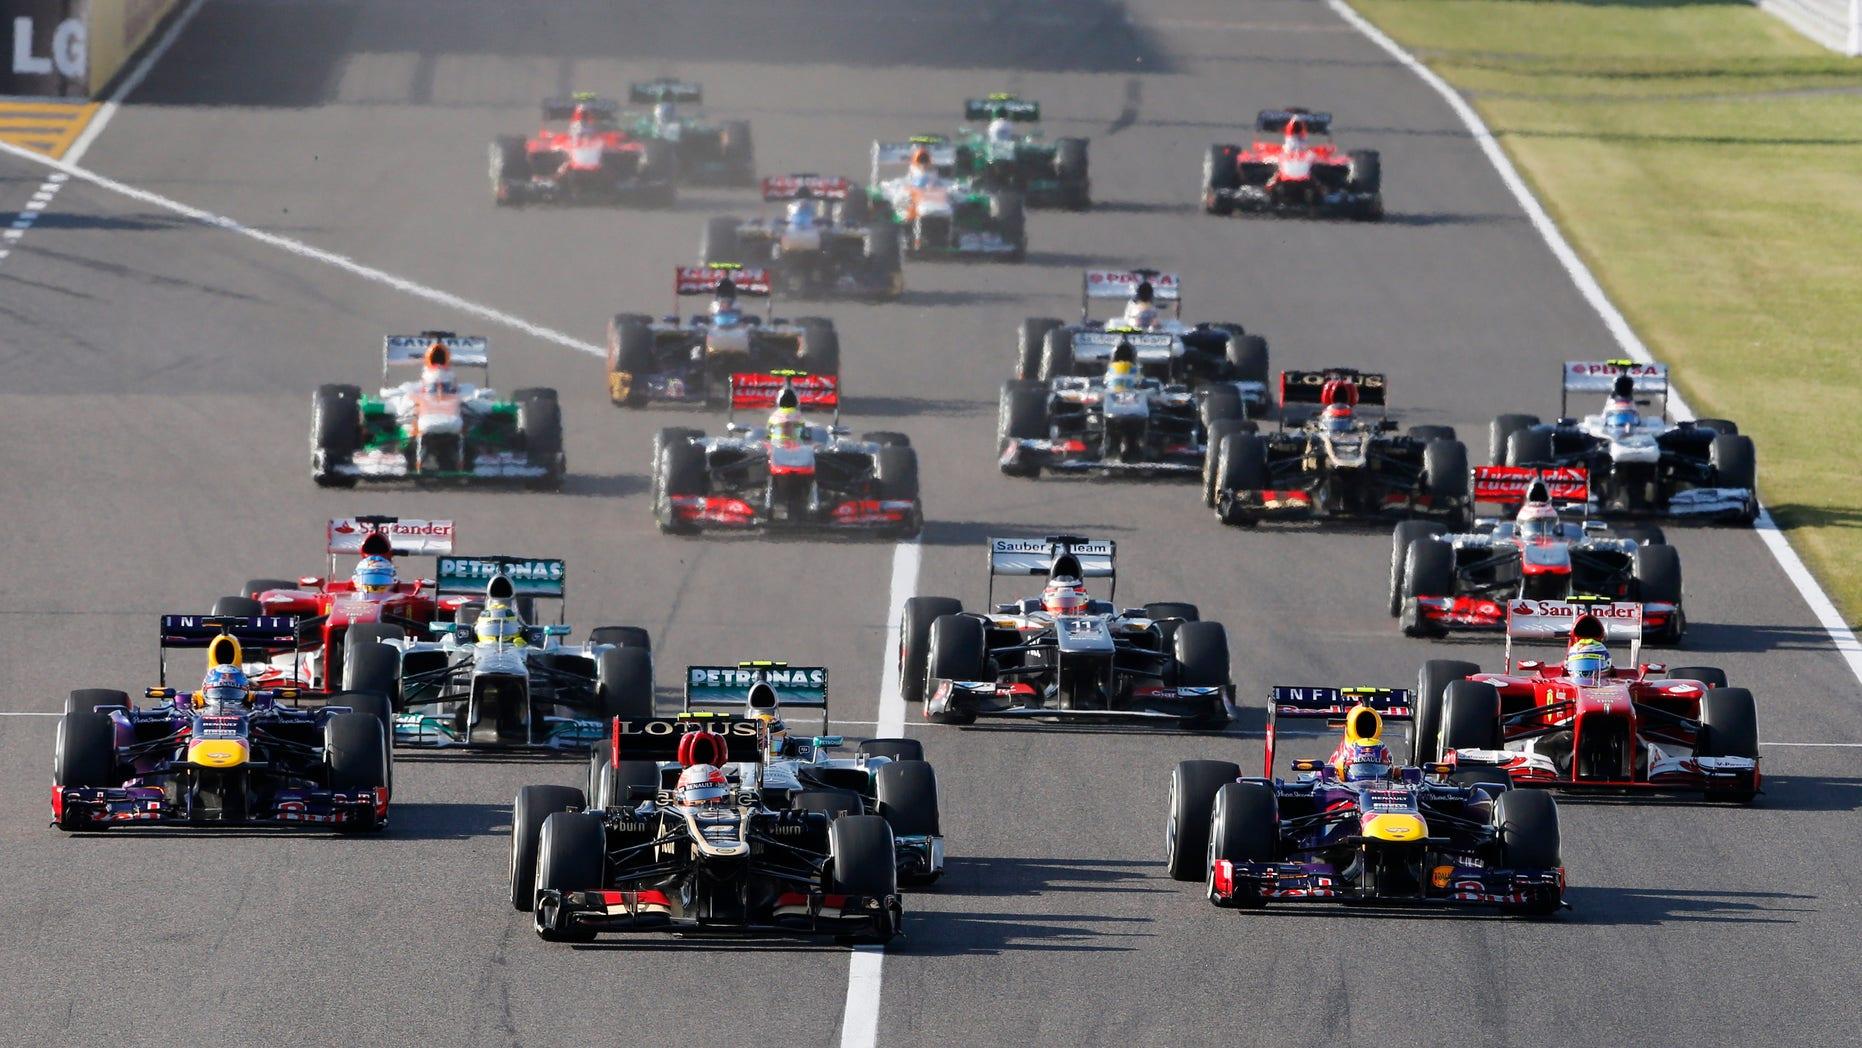 Lotus driver Romain Grosjean of France, center, leads Red Bull driver Mark Webber of Australia, front right, and Red Bull driver Sebastian Vettel of Germany, left, at the start of the Japanese Formula One Grand Prix at the Suzuka circuit in Suzuka, Japan, Sunday, Oct. 13, 2013. (AP Photo/Shuji Kajiyama)